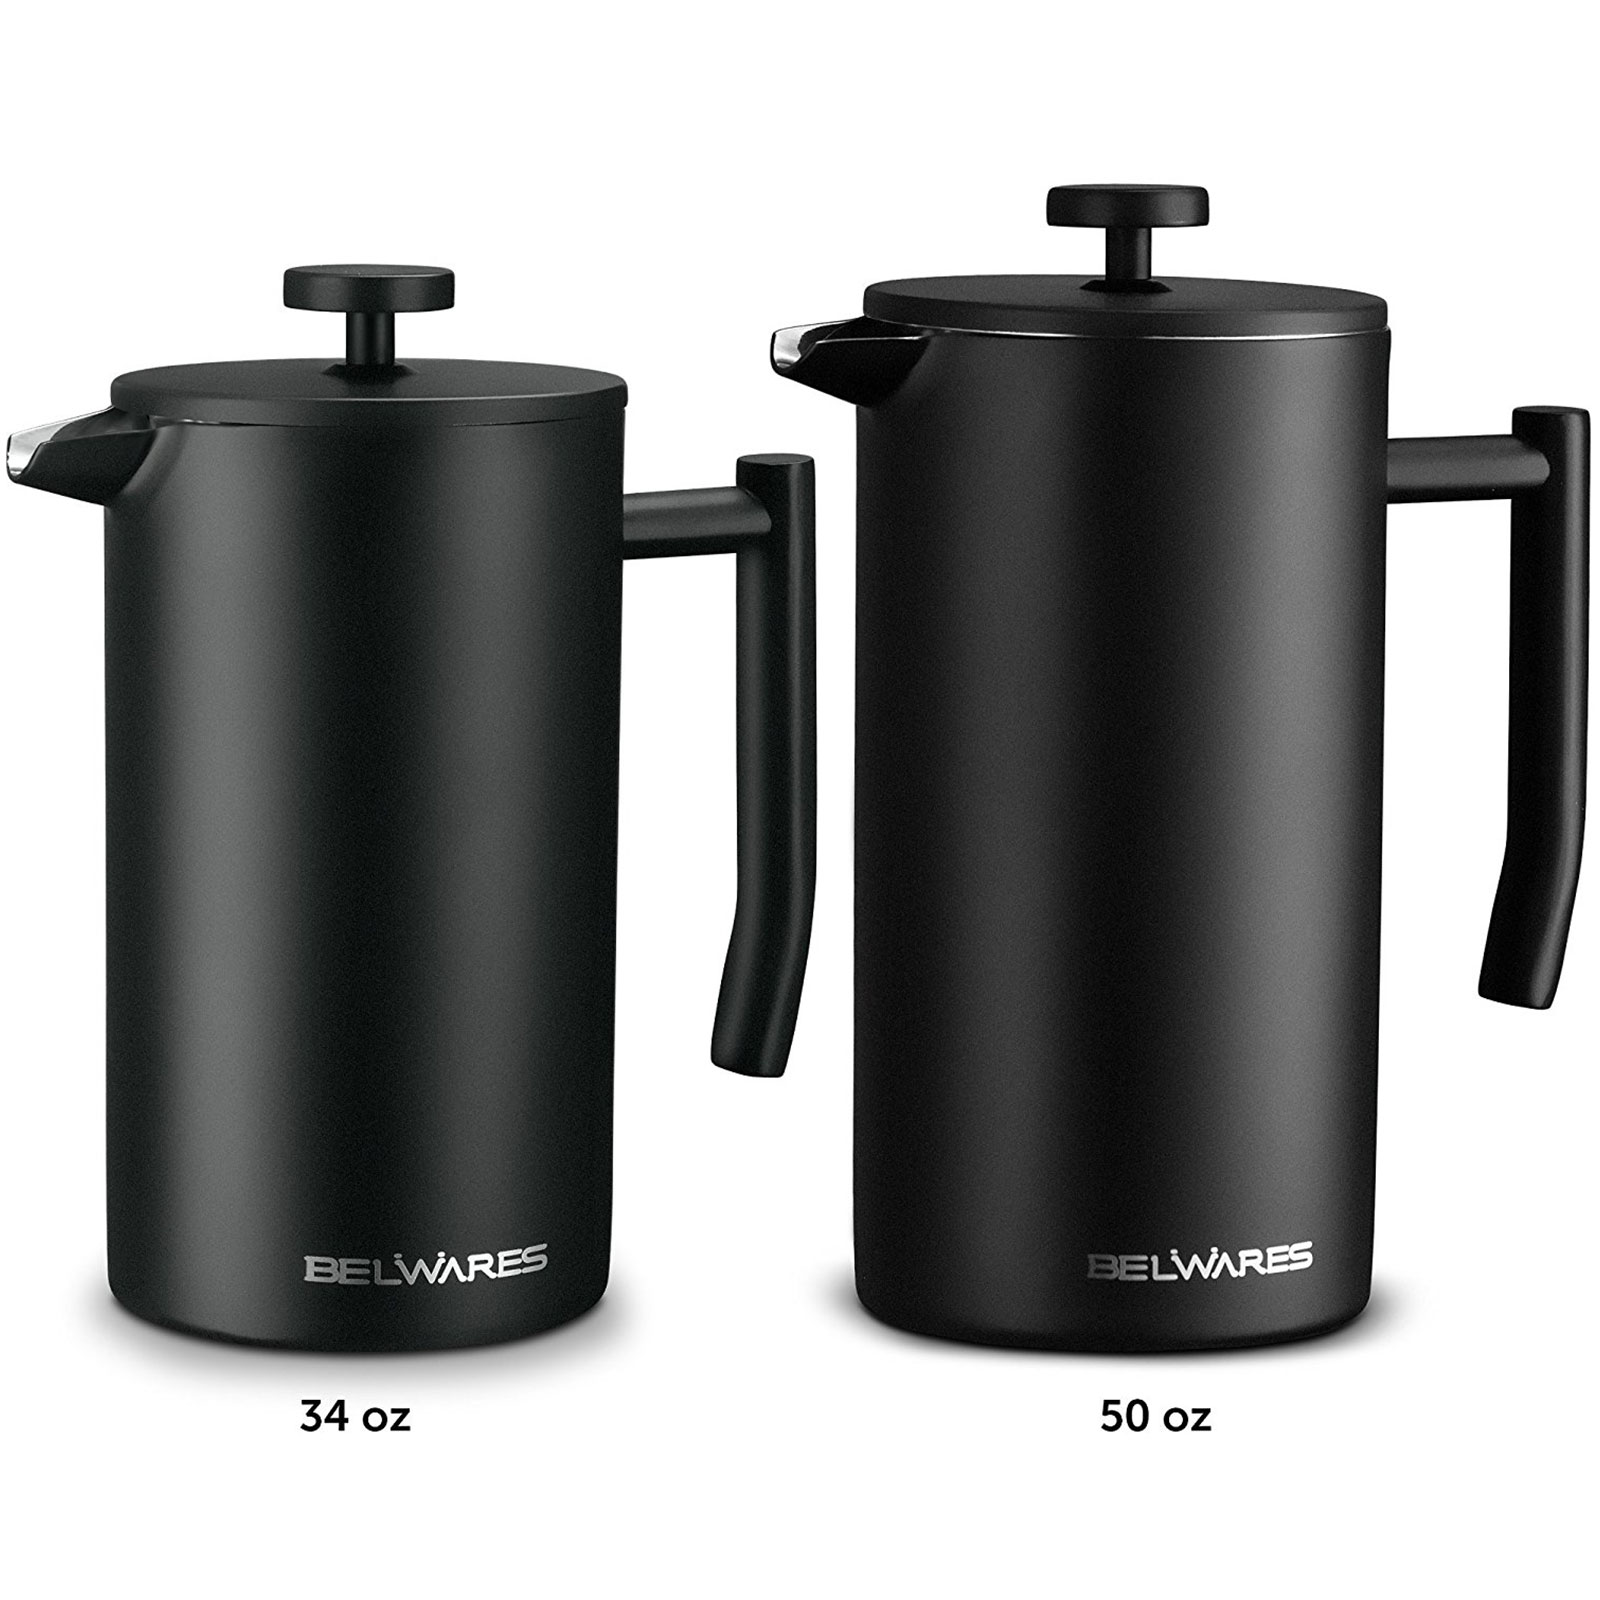 Belwares Large French Press Coffee Maker With Extra Filters 0